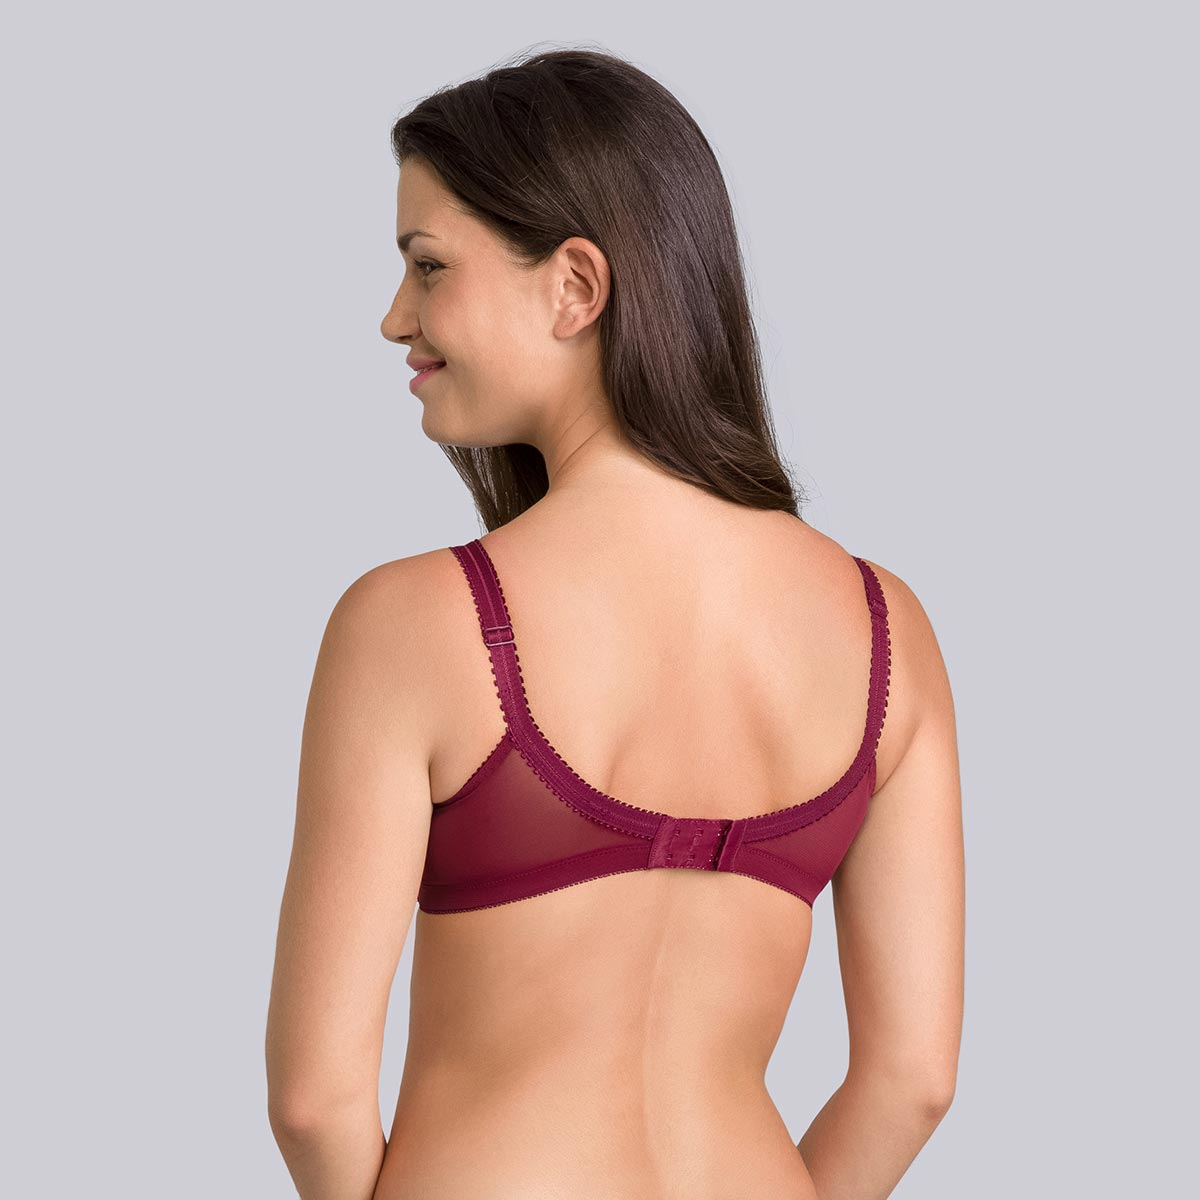 Reggiseno senza ferretto bordeaux - Criss Cross 556 - PLAYTEX